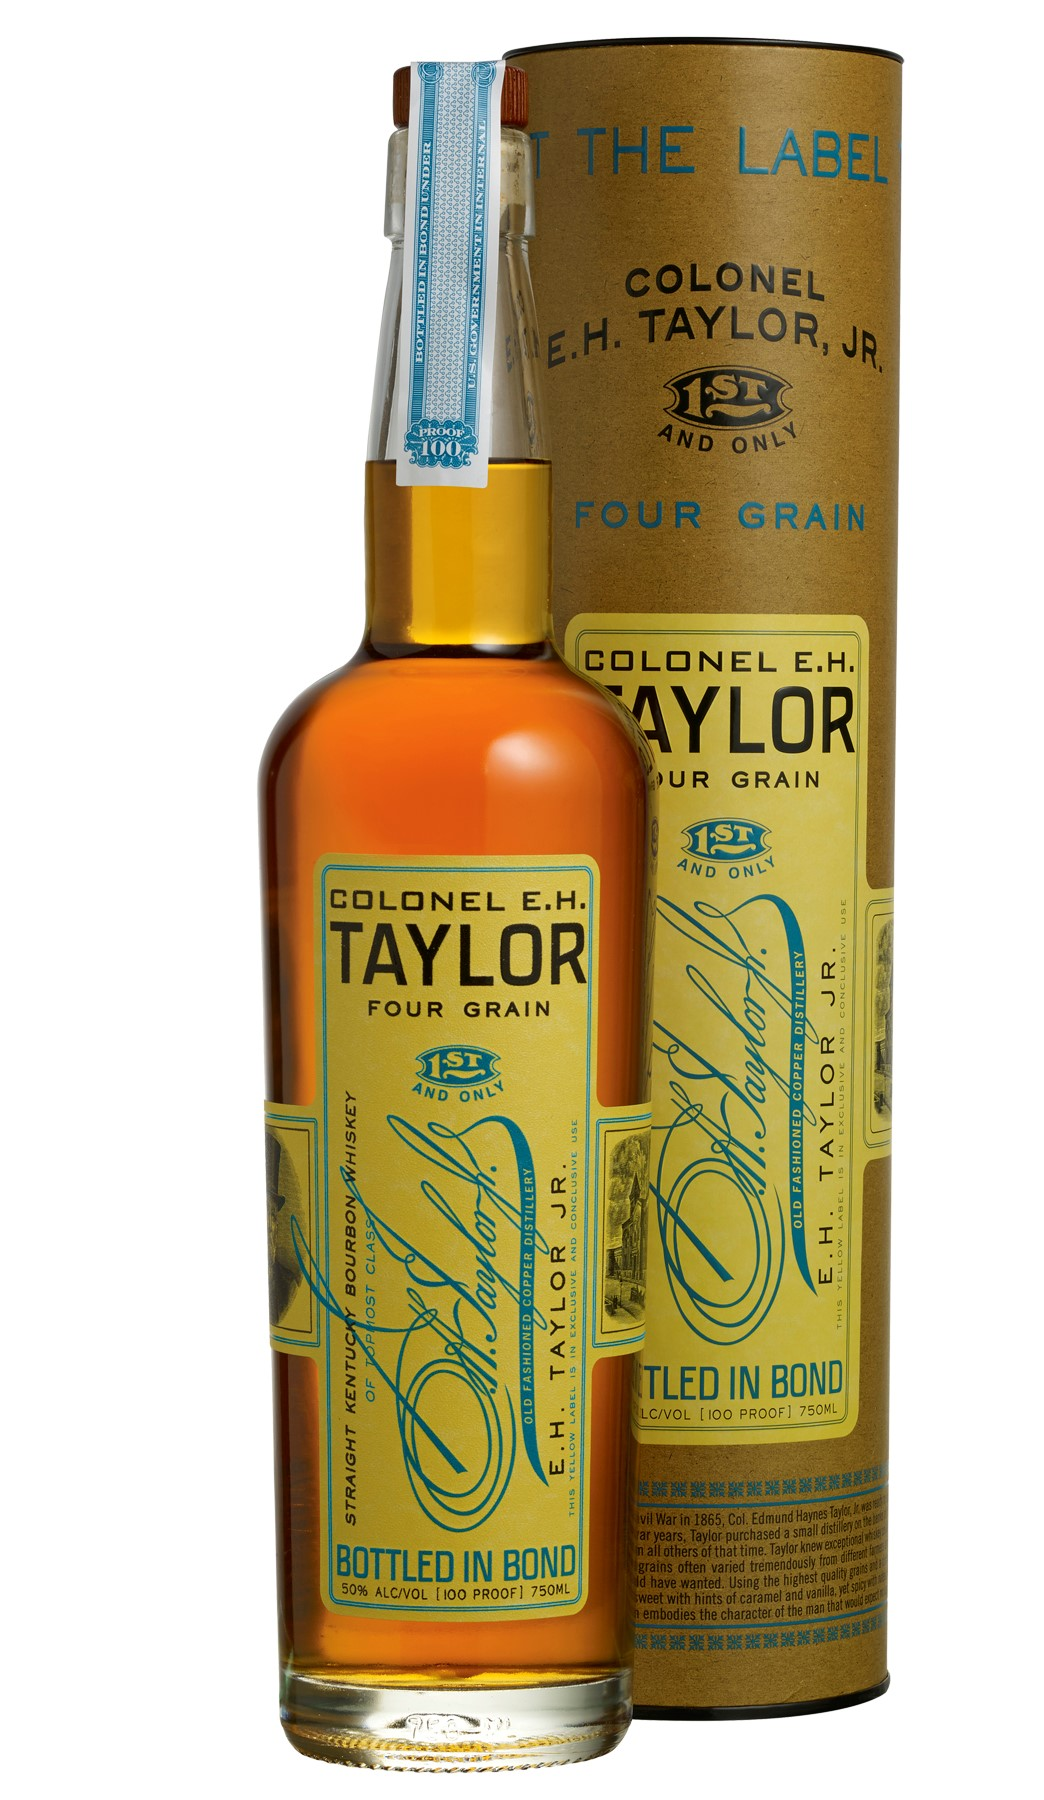 Col. E.H. Taylor Four Grain Bourbon